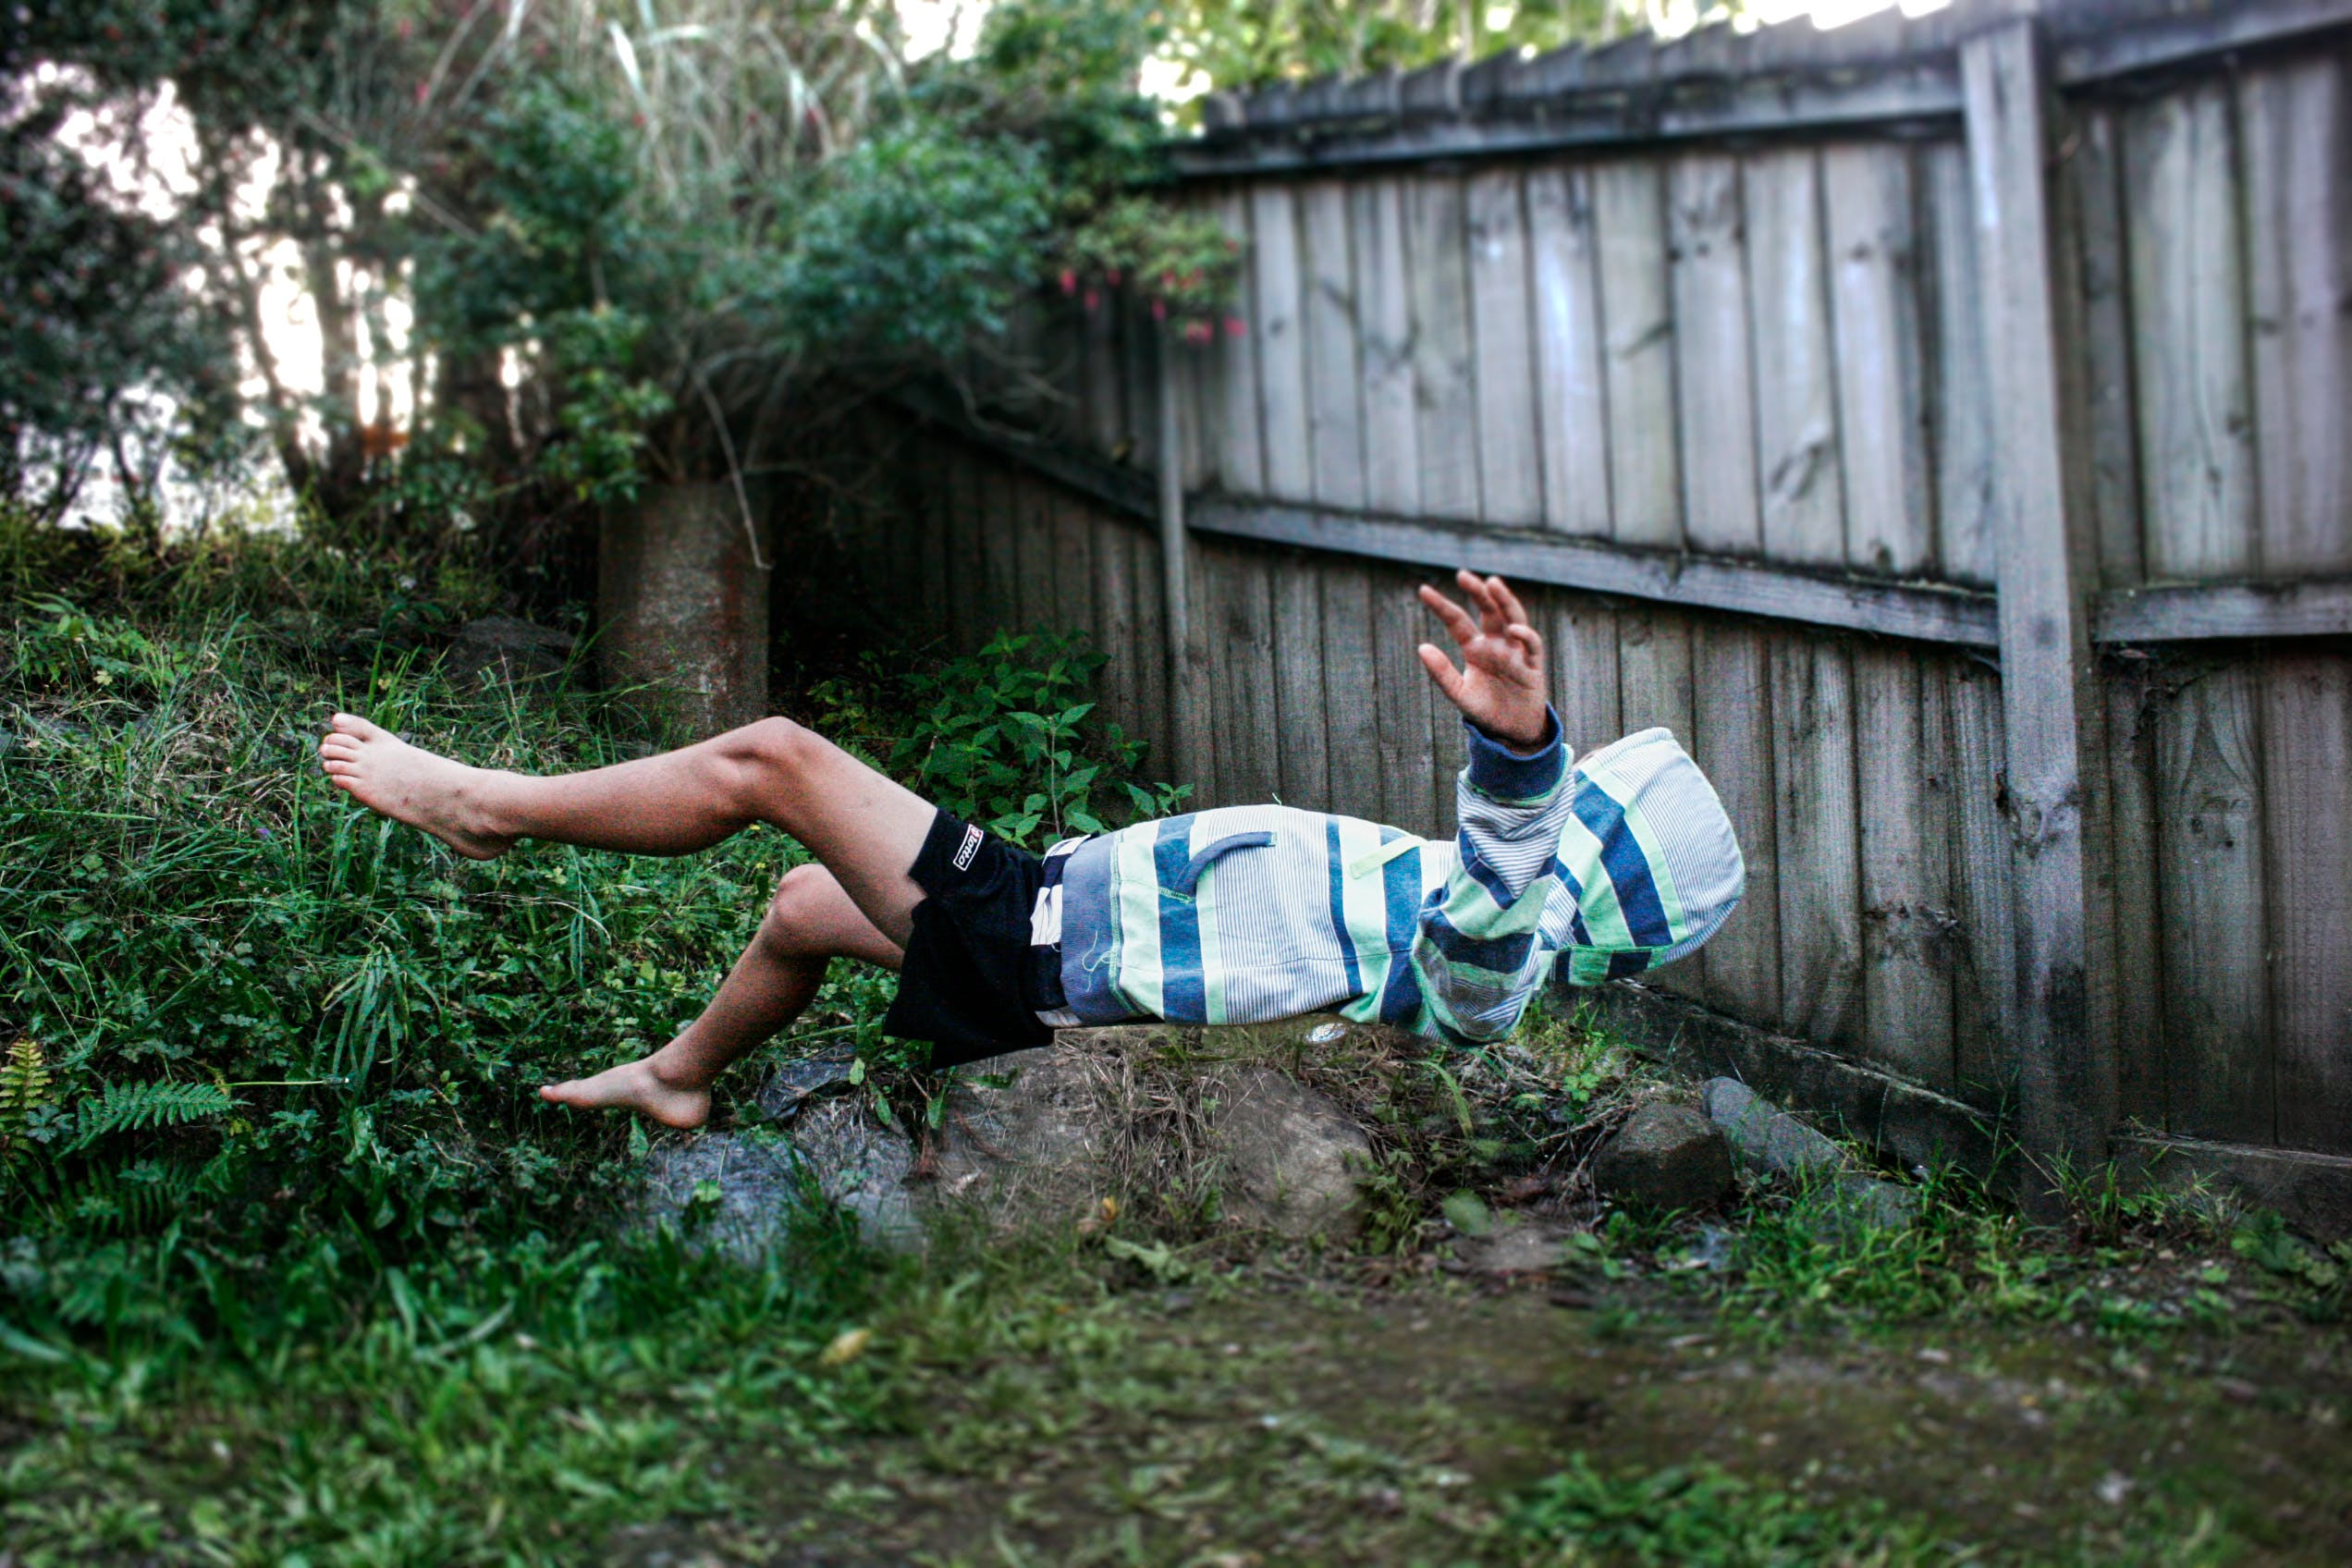 Floating Photography of Man in White and Blue Striped Top